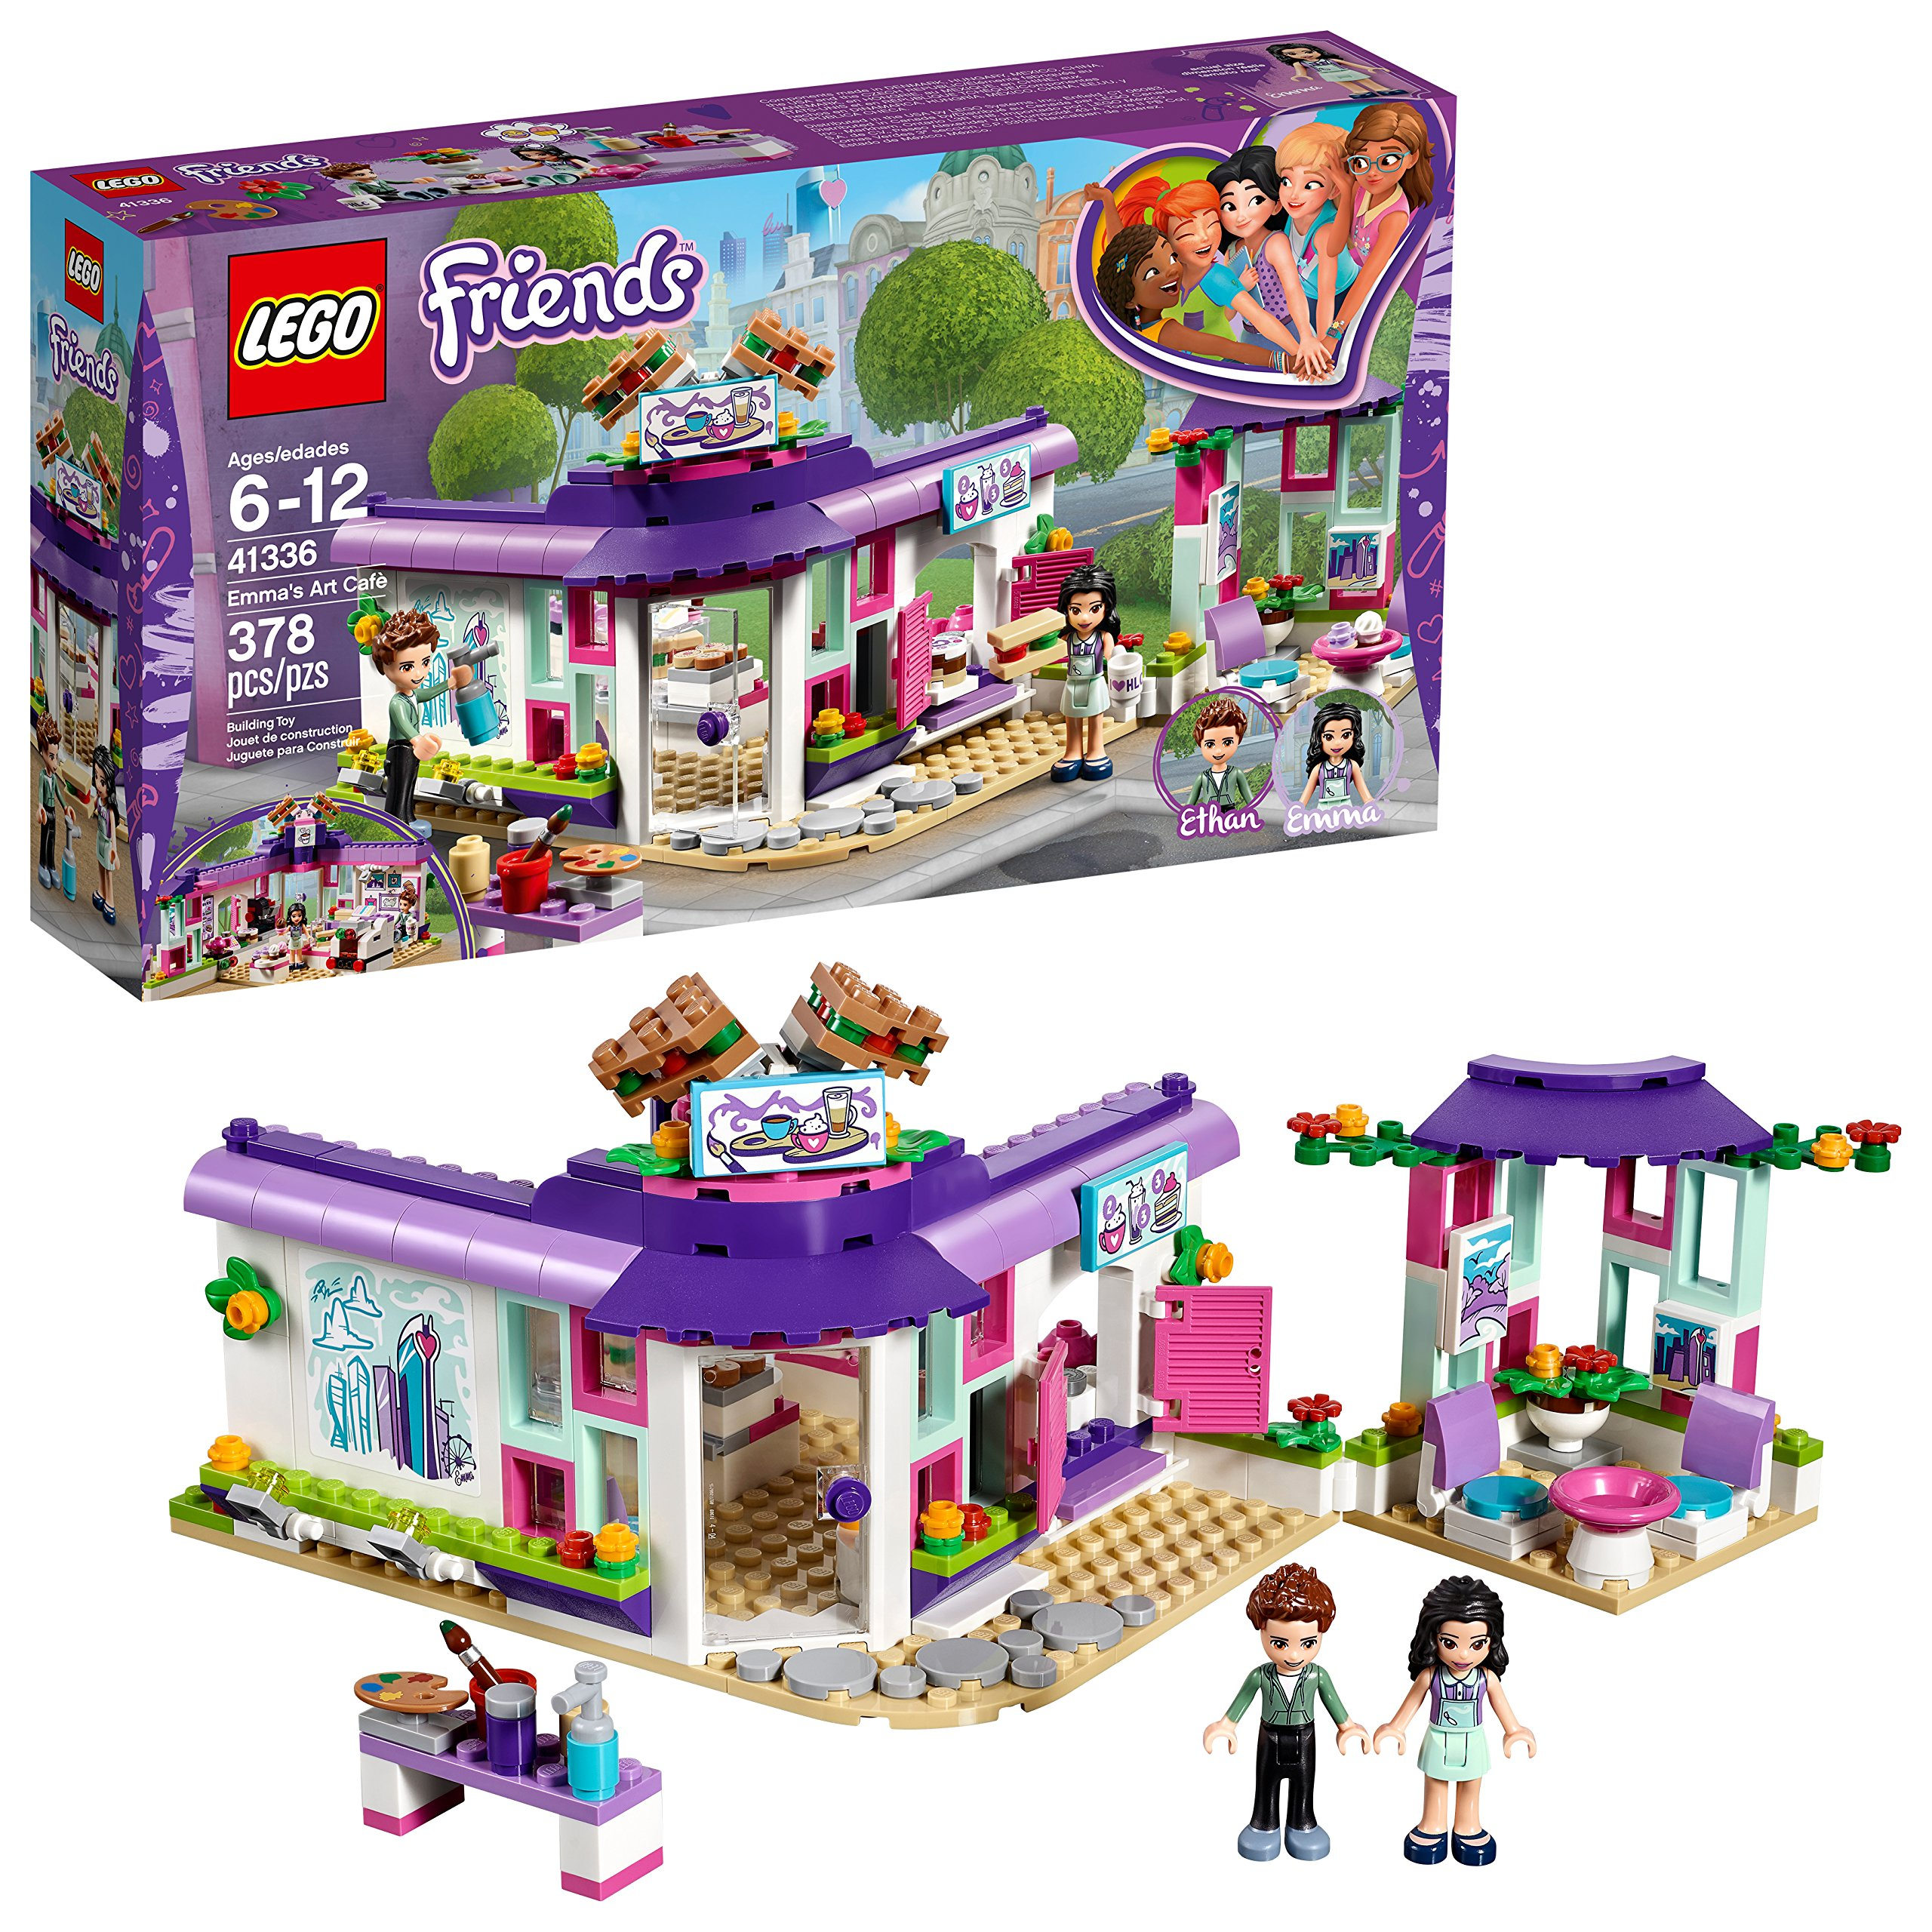 LEGO Friends Emma's Art Café 41336 Building Set (378 Piece) by LEGO